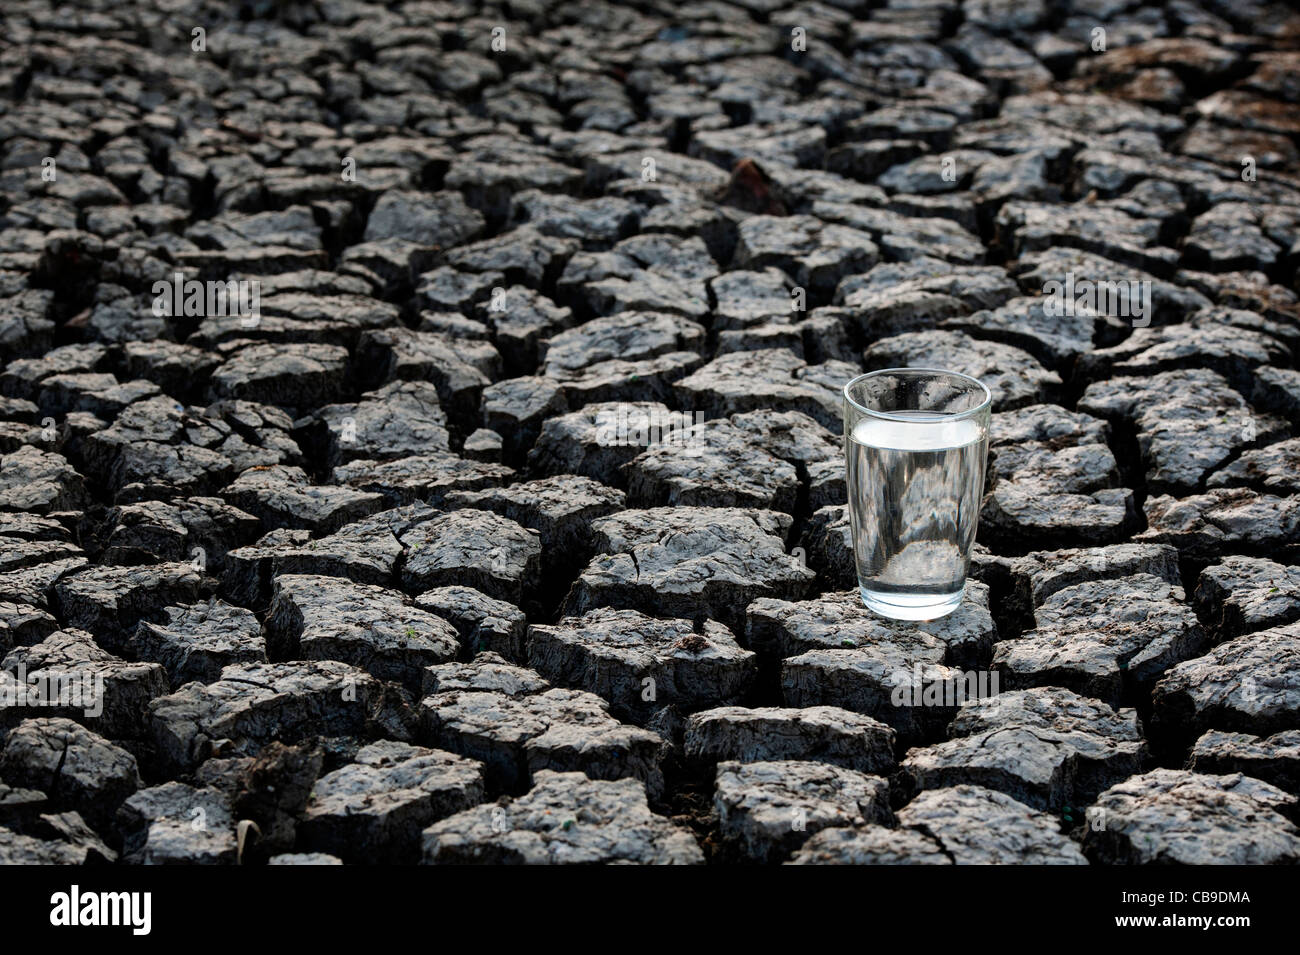 Glass of water on dry cracked earth. India - Stock Image